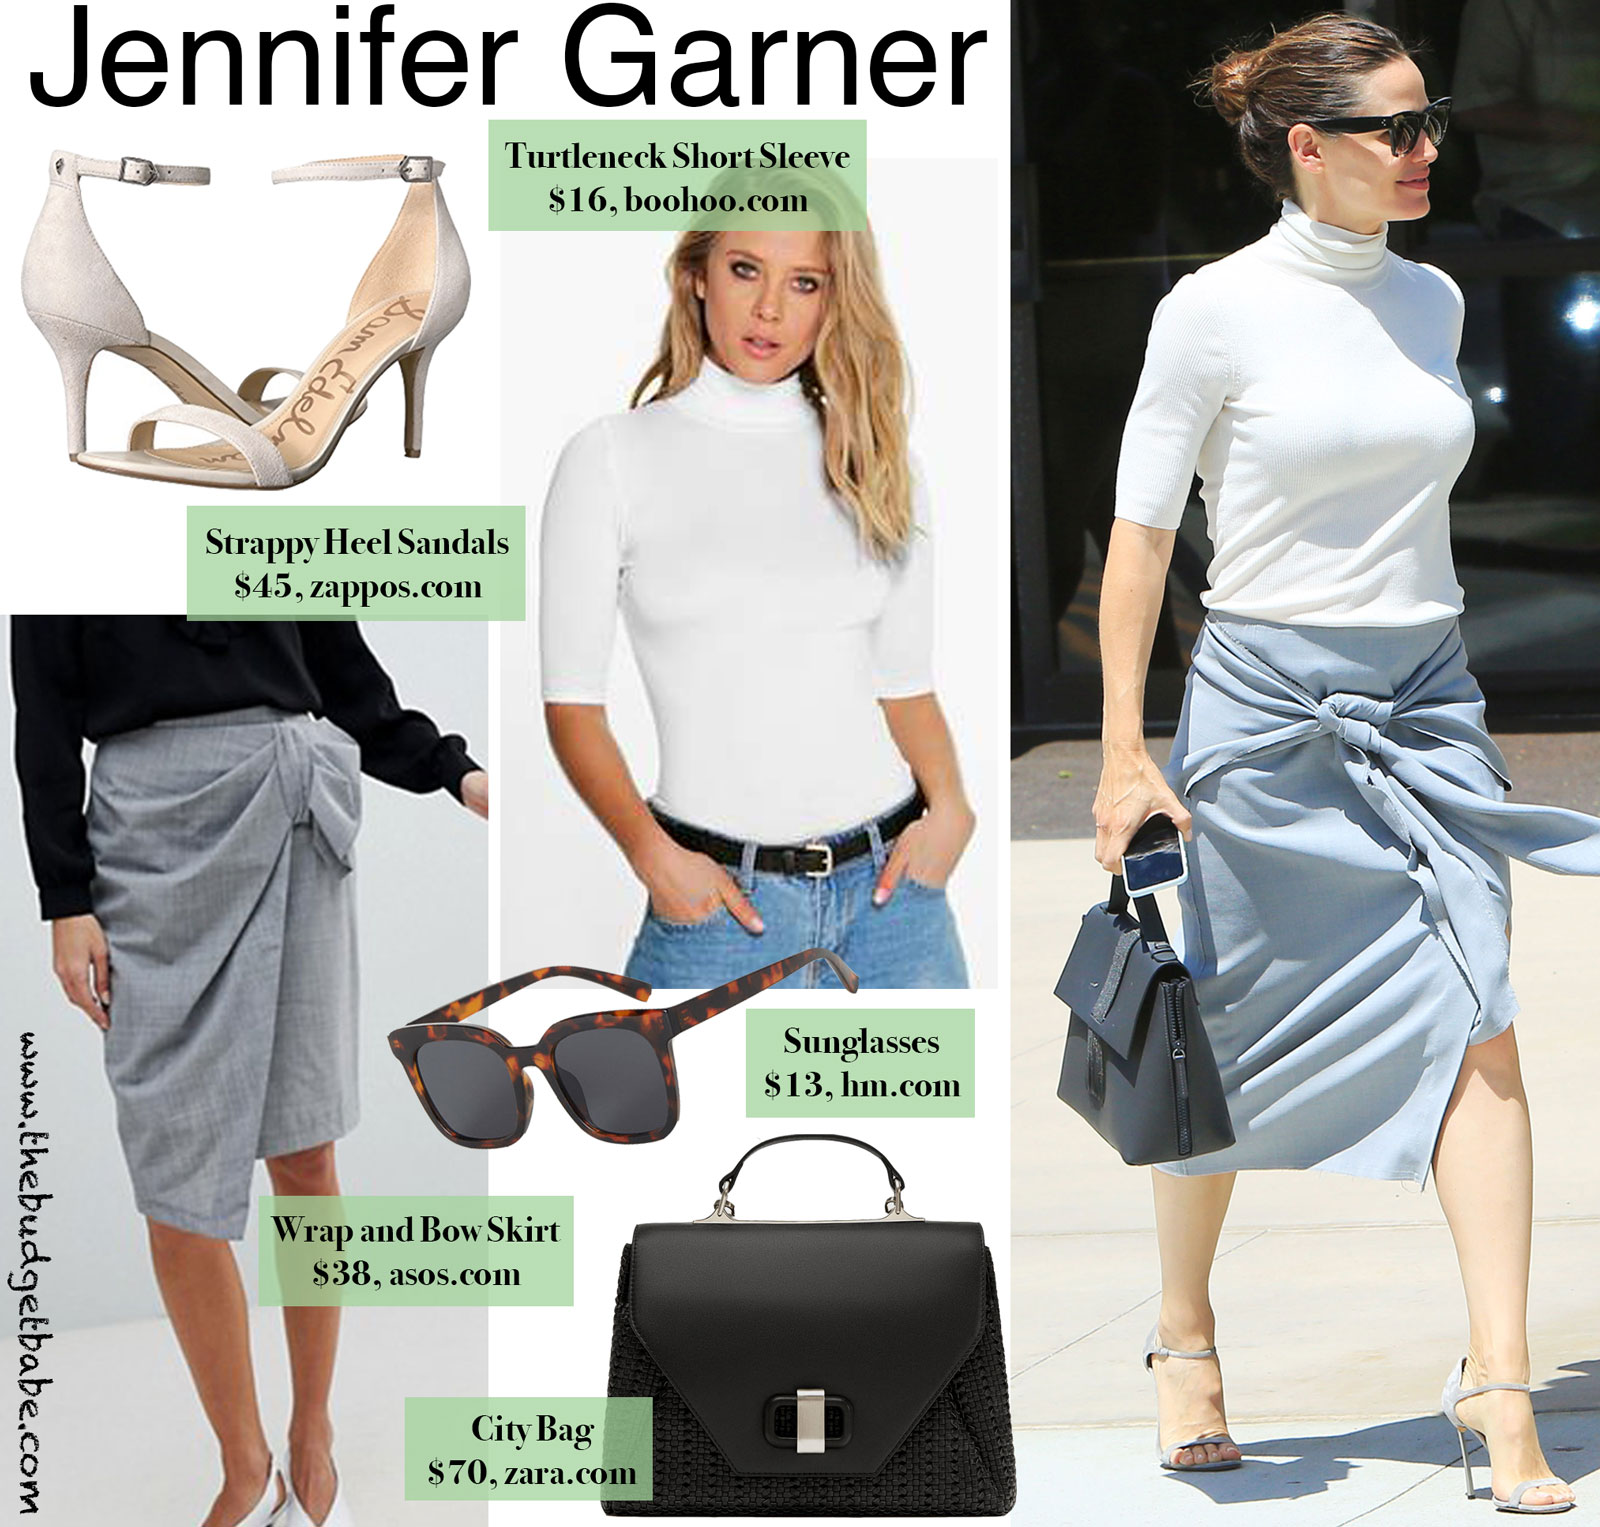 Jennifer Garner Turtleneck and Tie Front Look for Less